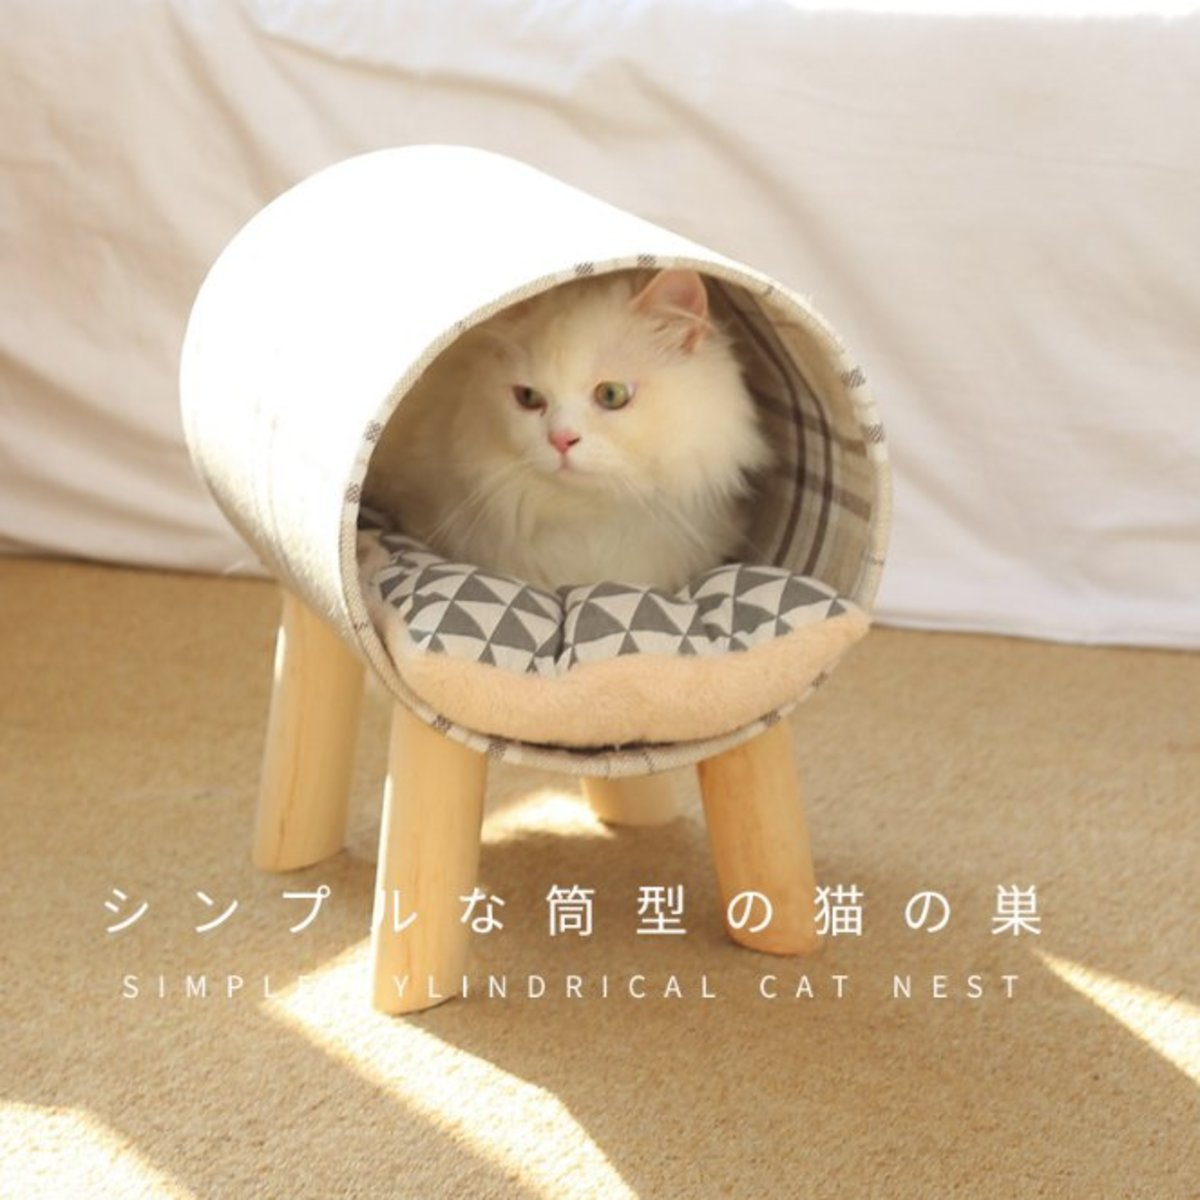 Universal Cat Bed - Japanese Style - Cylindrical Bed - Comfortable For All 4 Seasons